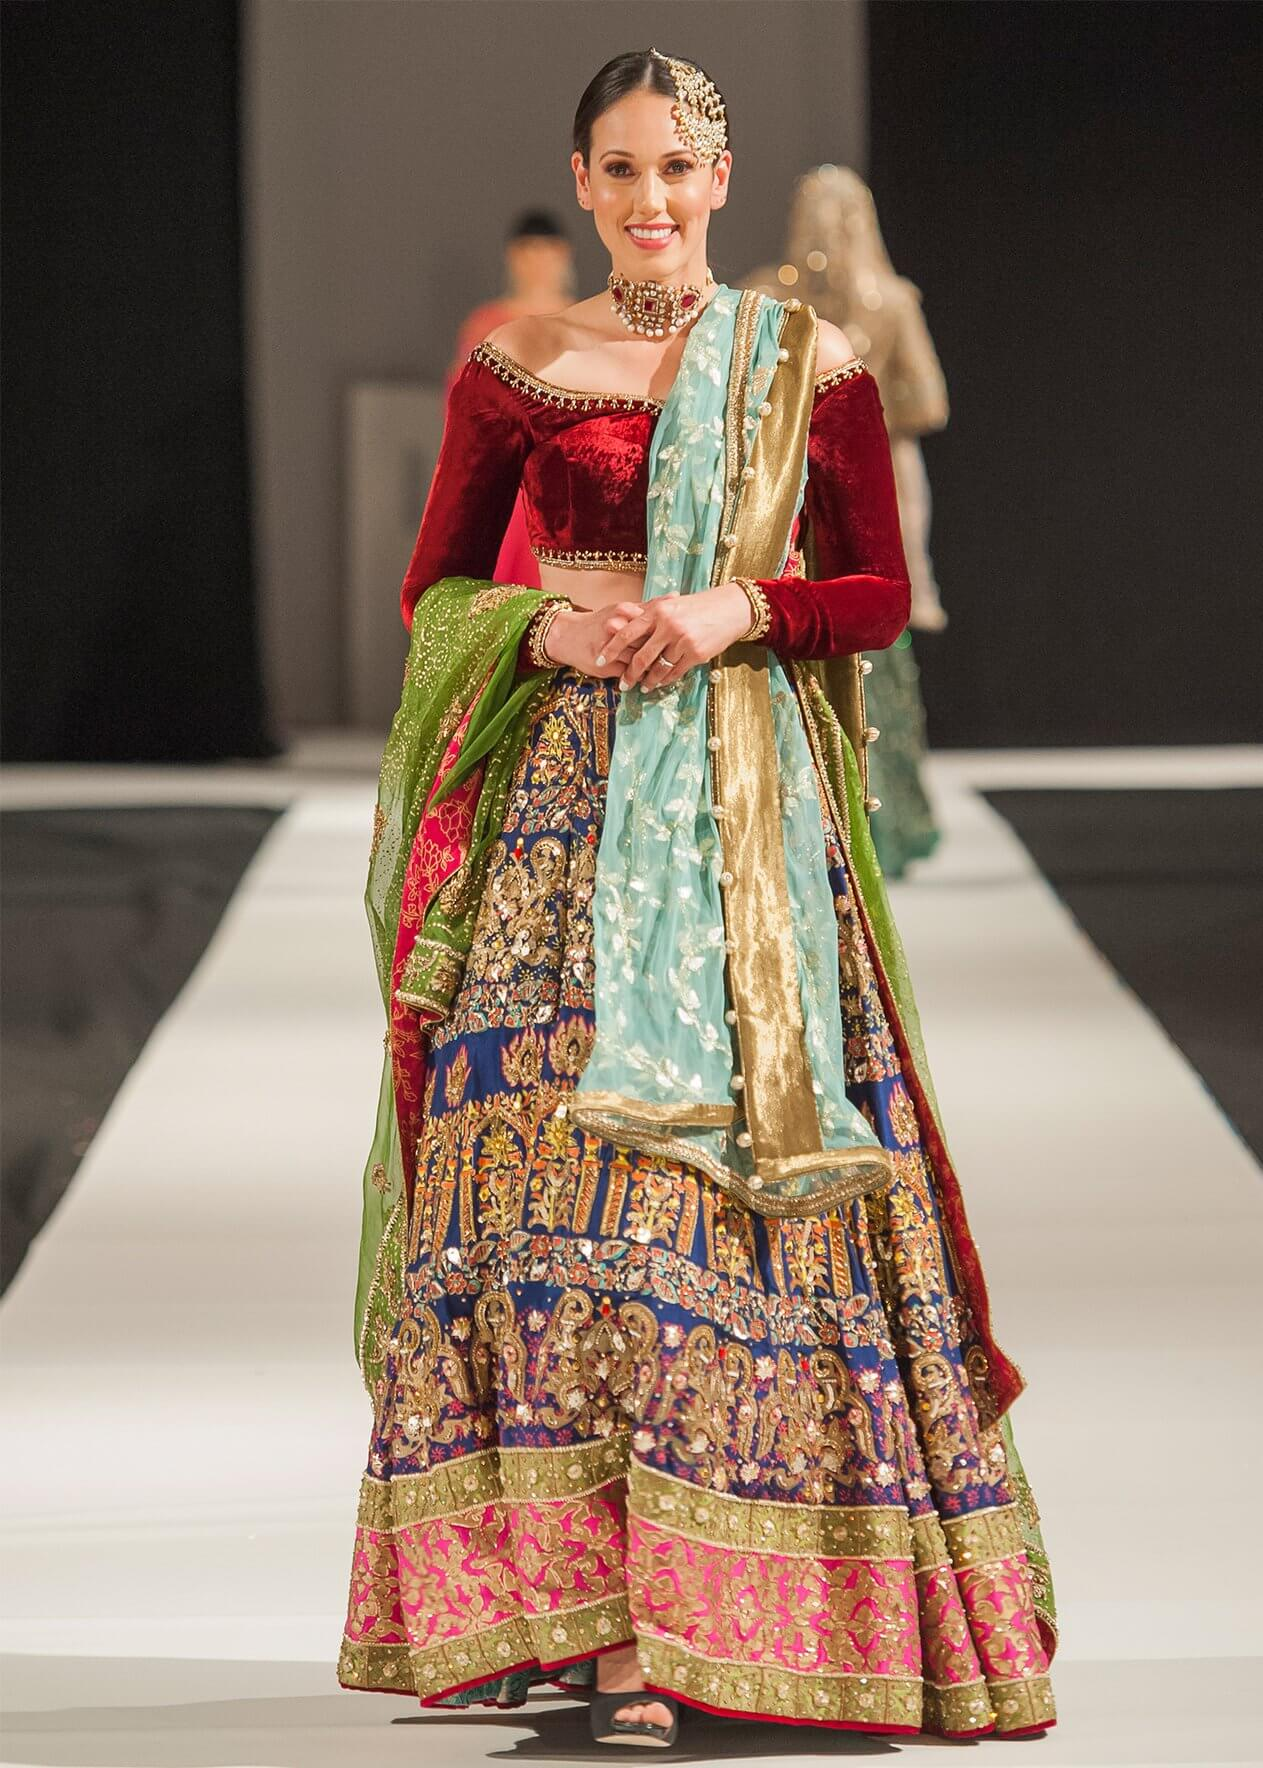 Bridal Lehnga with Velvet Blouse for a Perfect Pakistani Bride by Mohsin Ranjha Bridal Collection